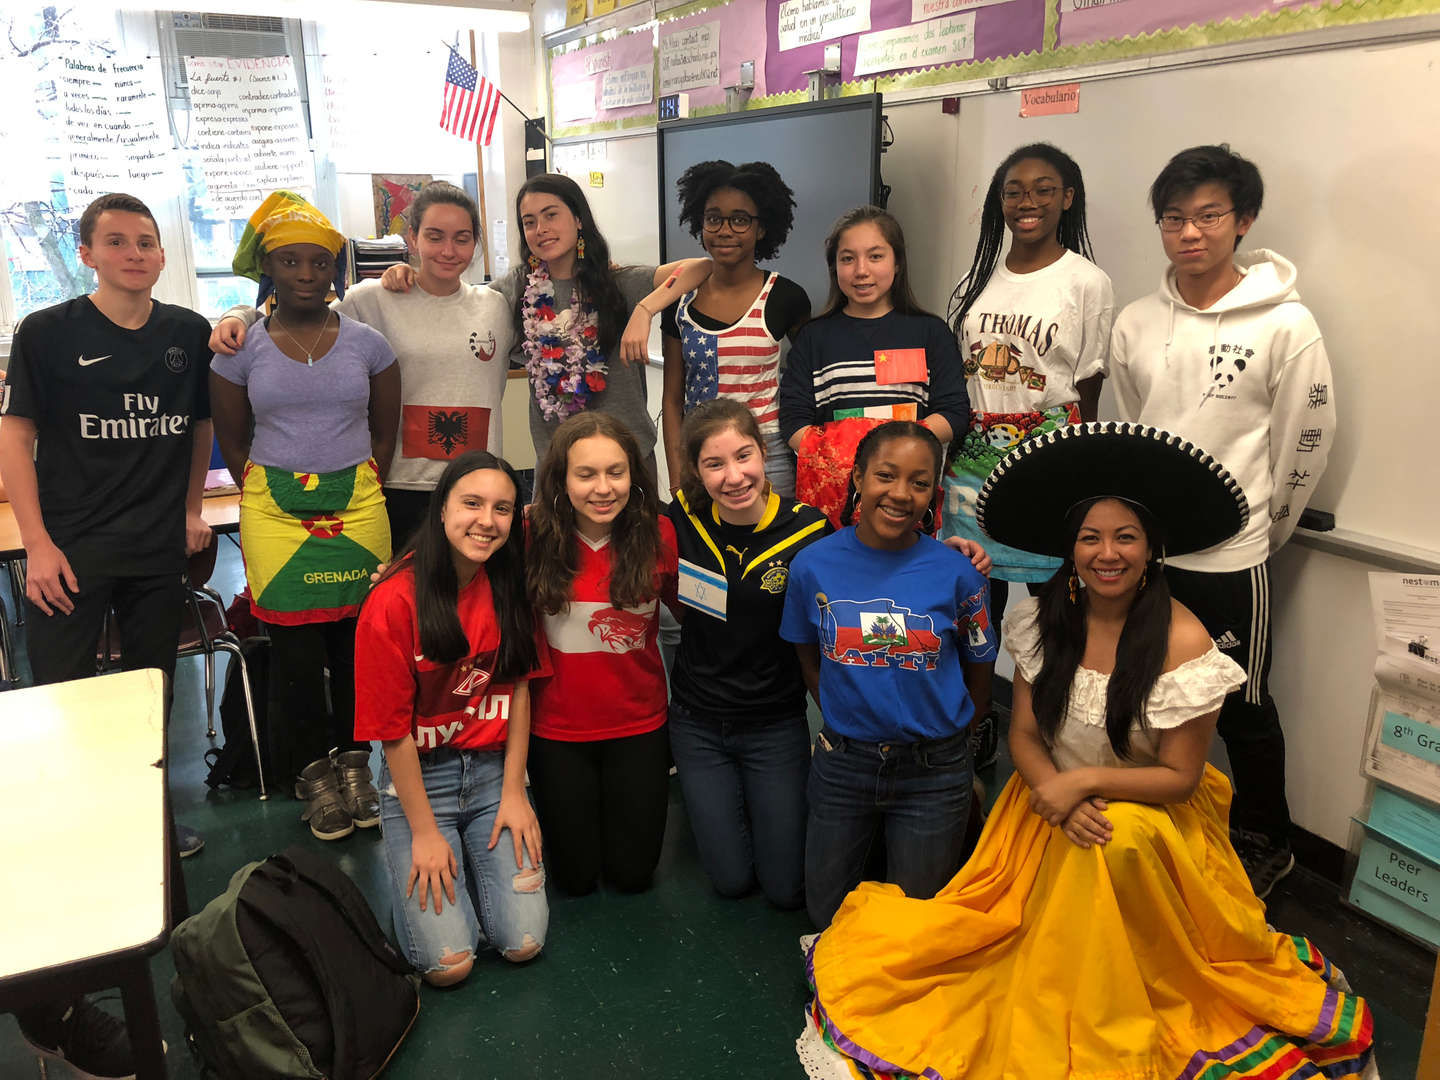 Upper grade students dressed up for multicultural day